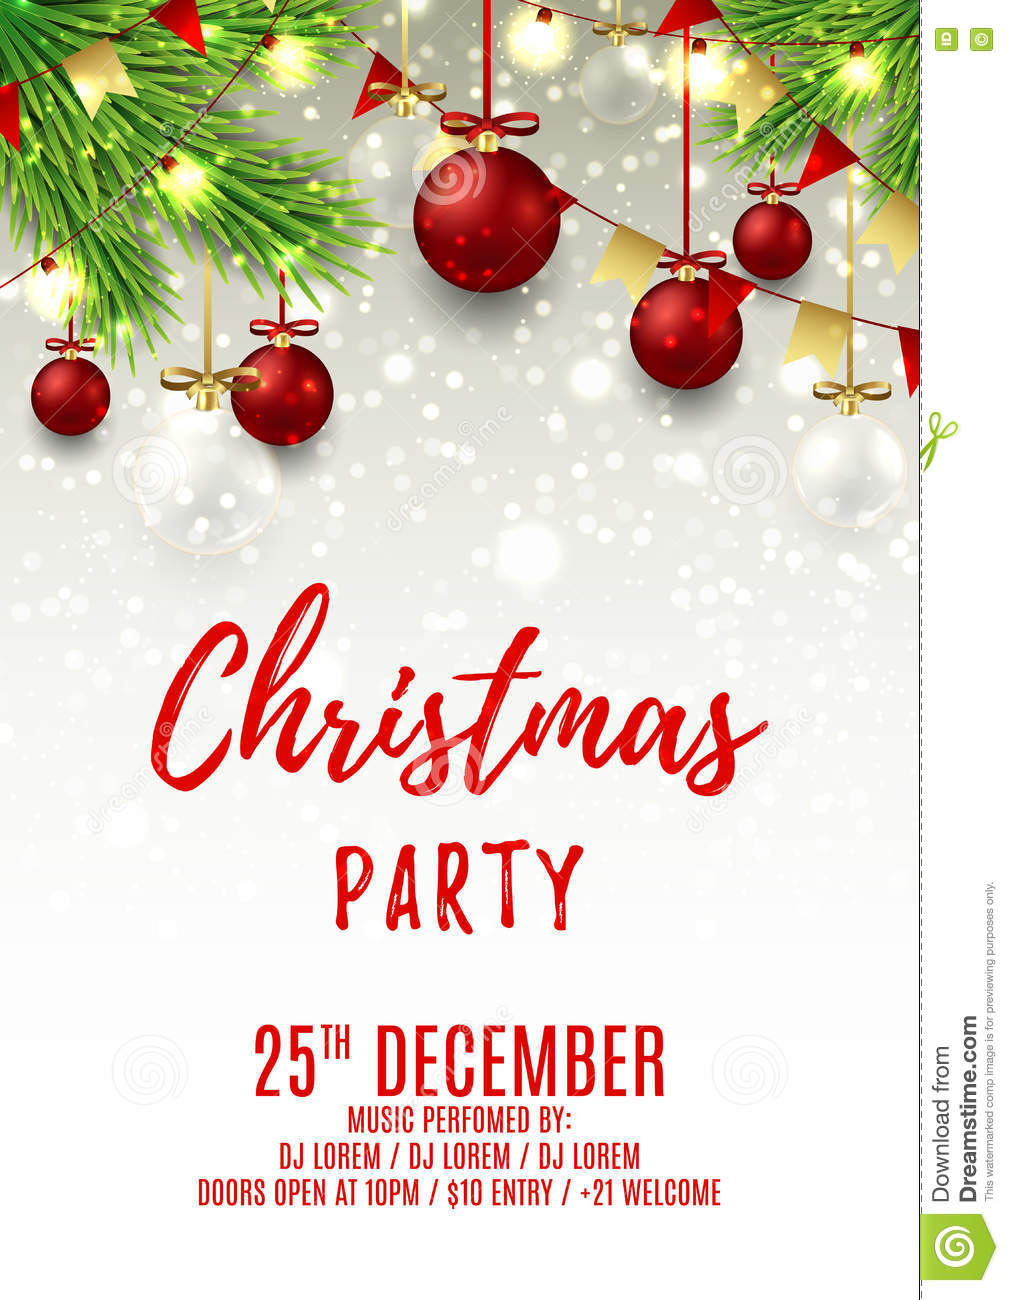 Christmas Party Flyer Template.Christmas Party Flyer Template Stock Vector Illustration